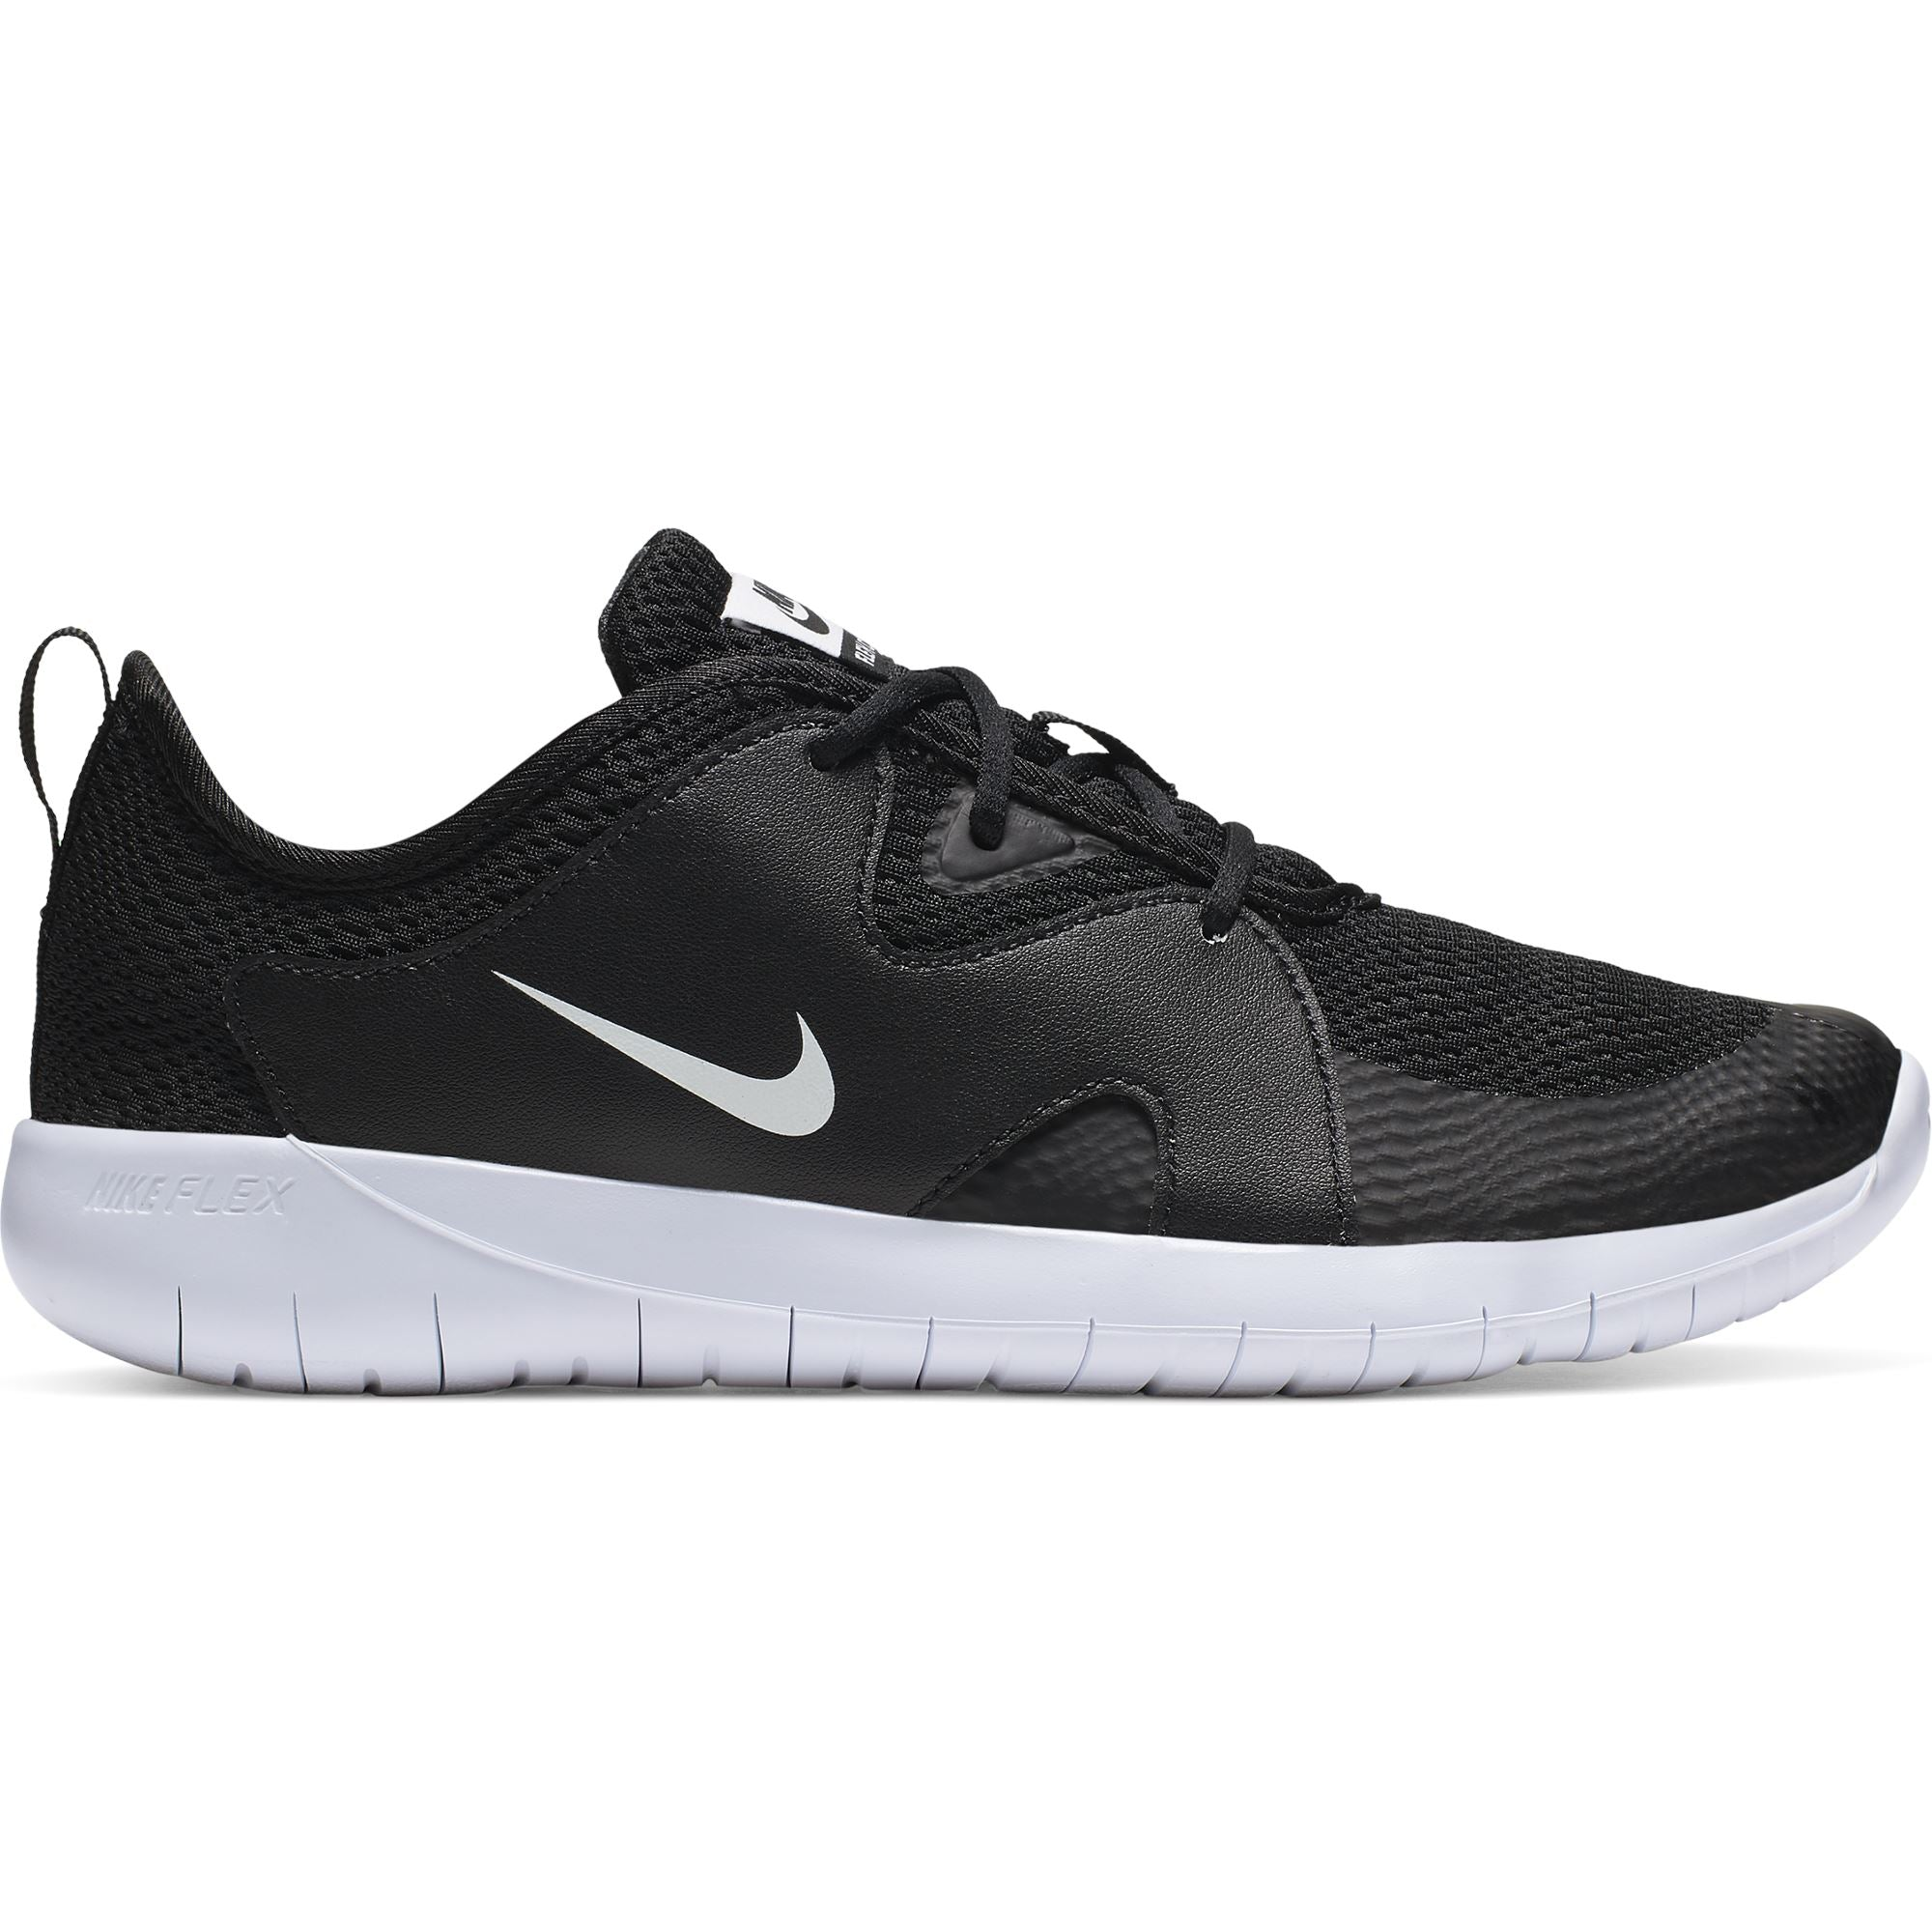 Nike Boys Flex Contact 3 - Black/White SP-Footwear-KidsBoys Nike